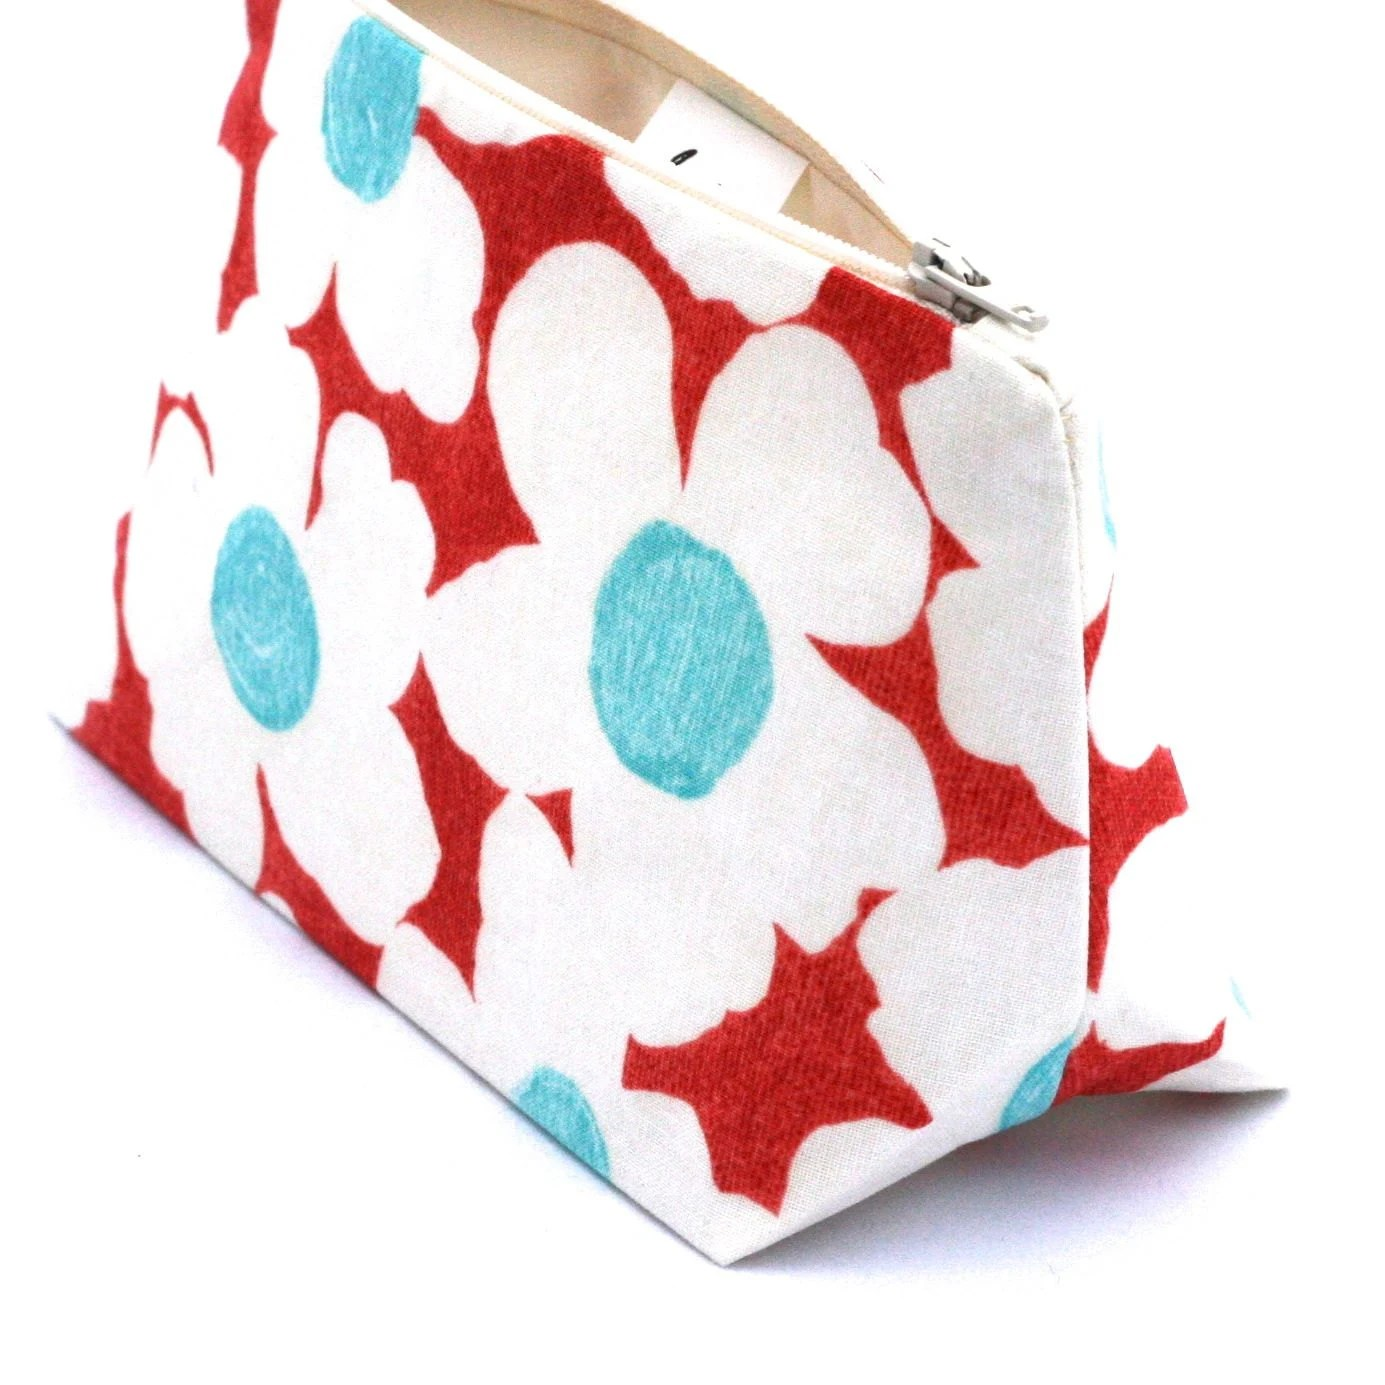 Christmas Gift Aqua & Red Retro Floral Makeup Bag/Cosmetic Bag - Stocking Stuffer, Gift for Her , Vintage Bridesmaid Gift, Birthday Gift - JordaniSarreal